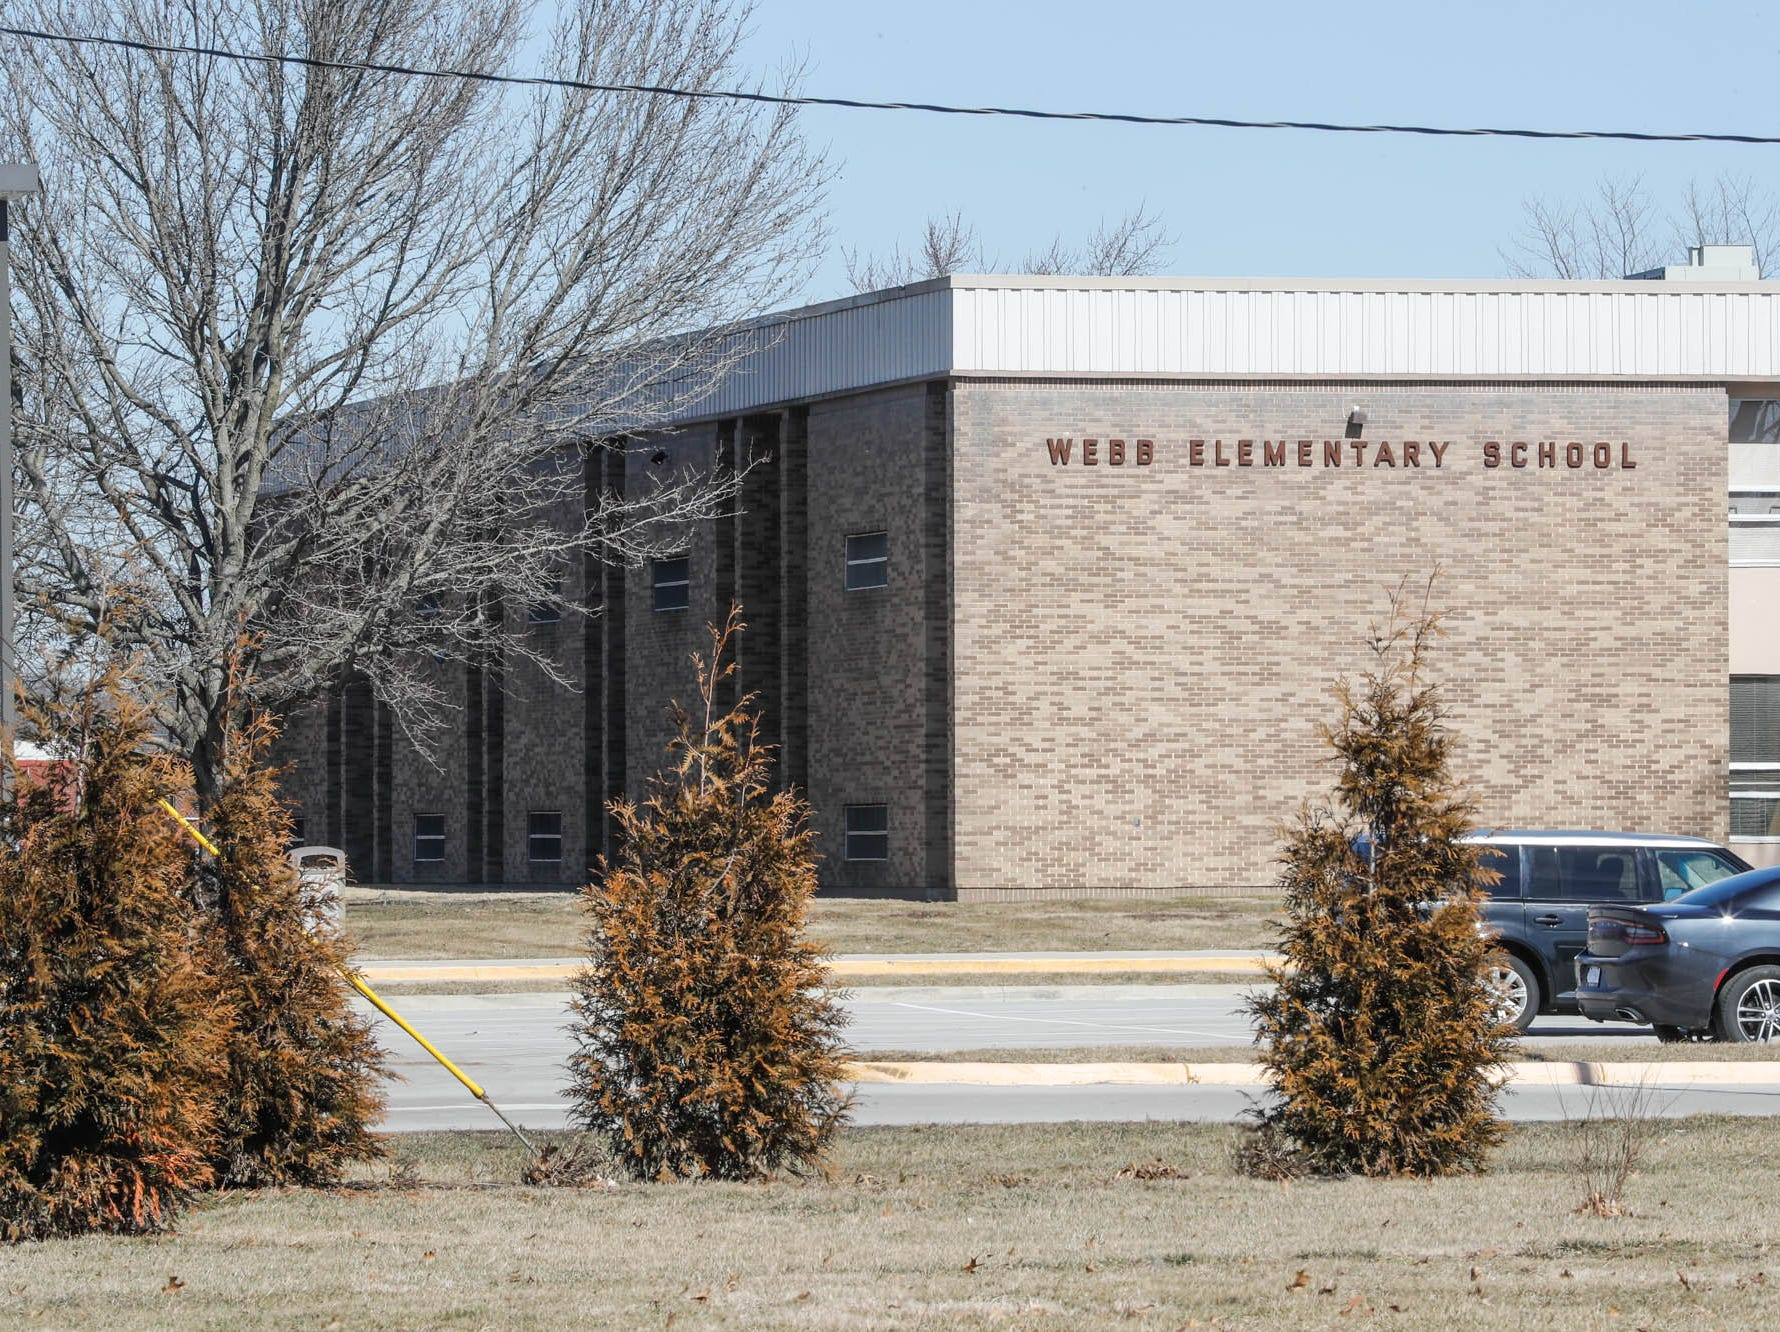 Two Franklin elementary schools closed after test results show toxins above safe levels